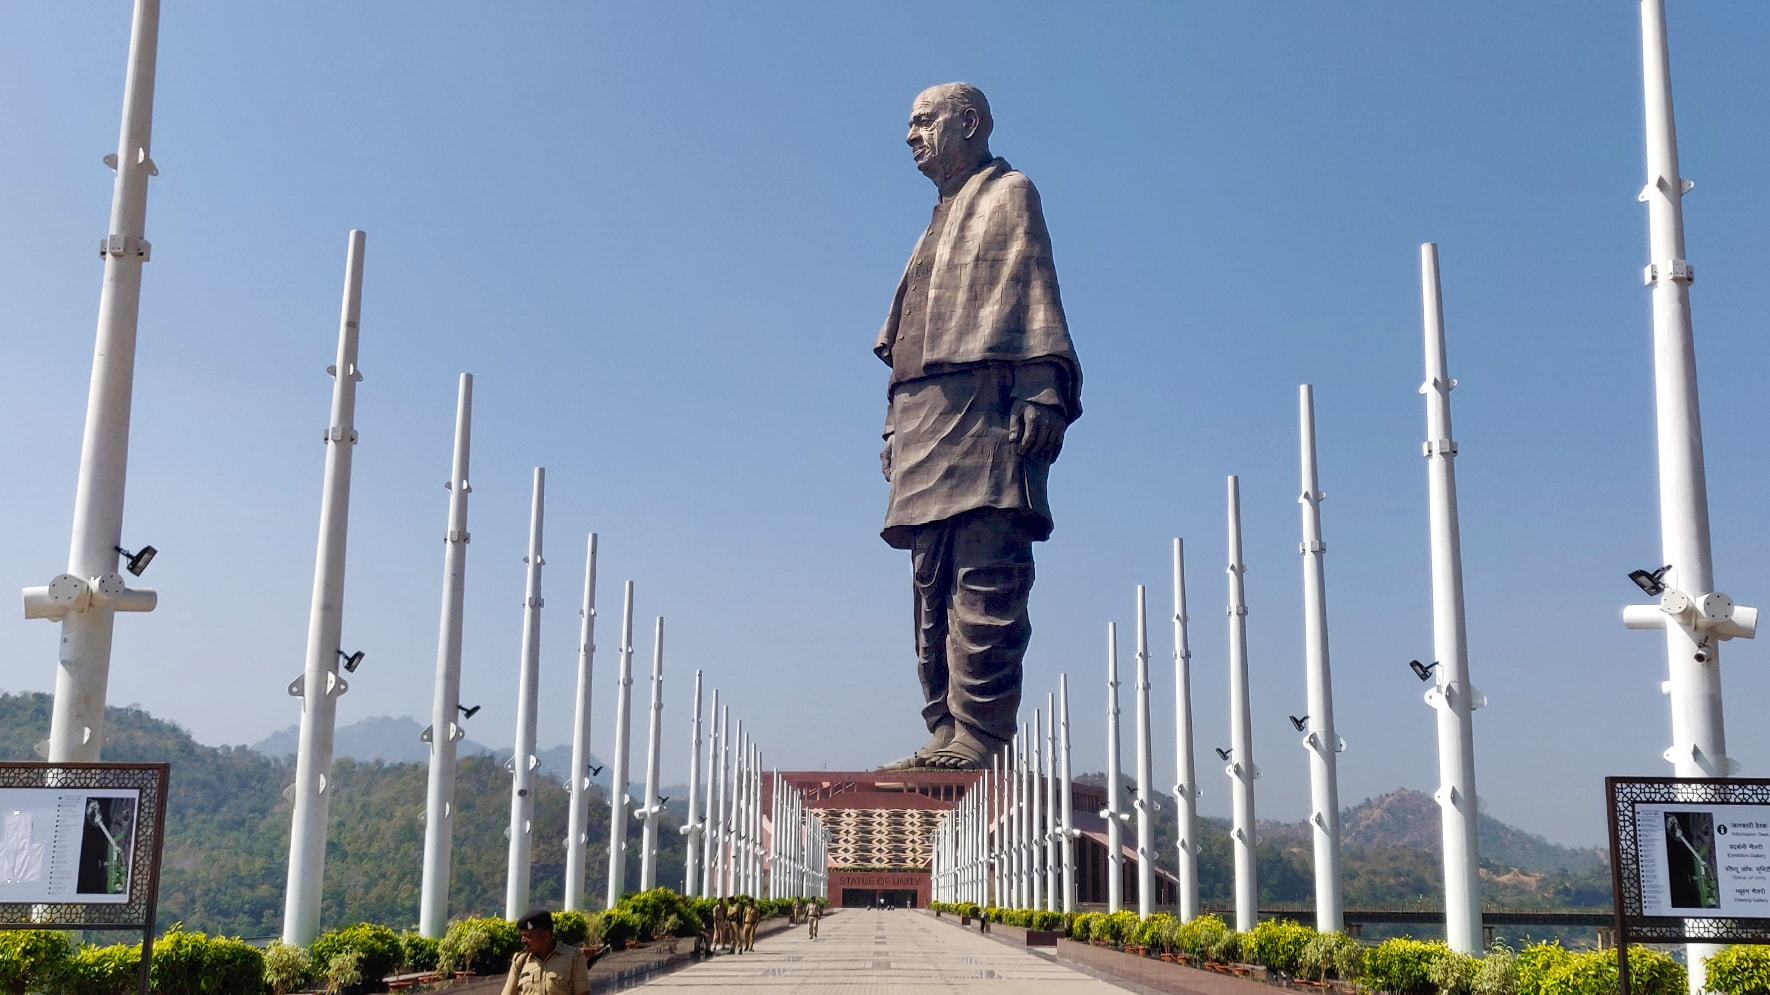 Statue of Unity - Creating a National Landmark for India